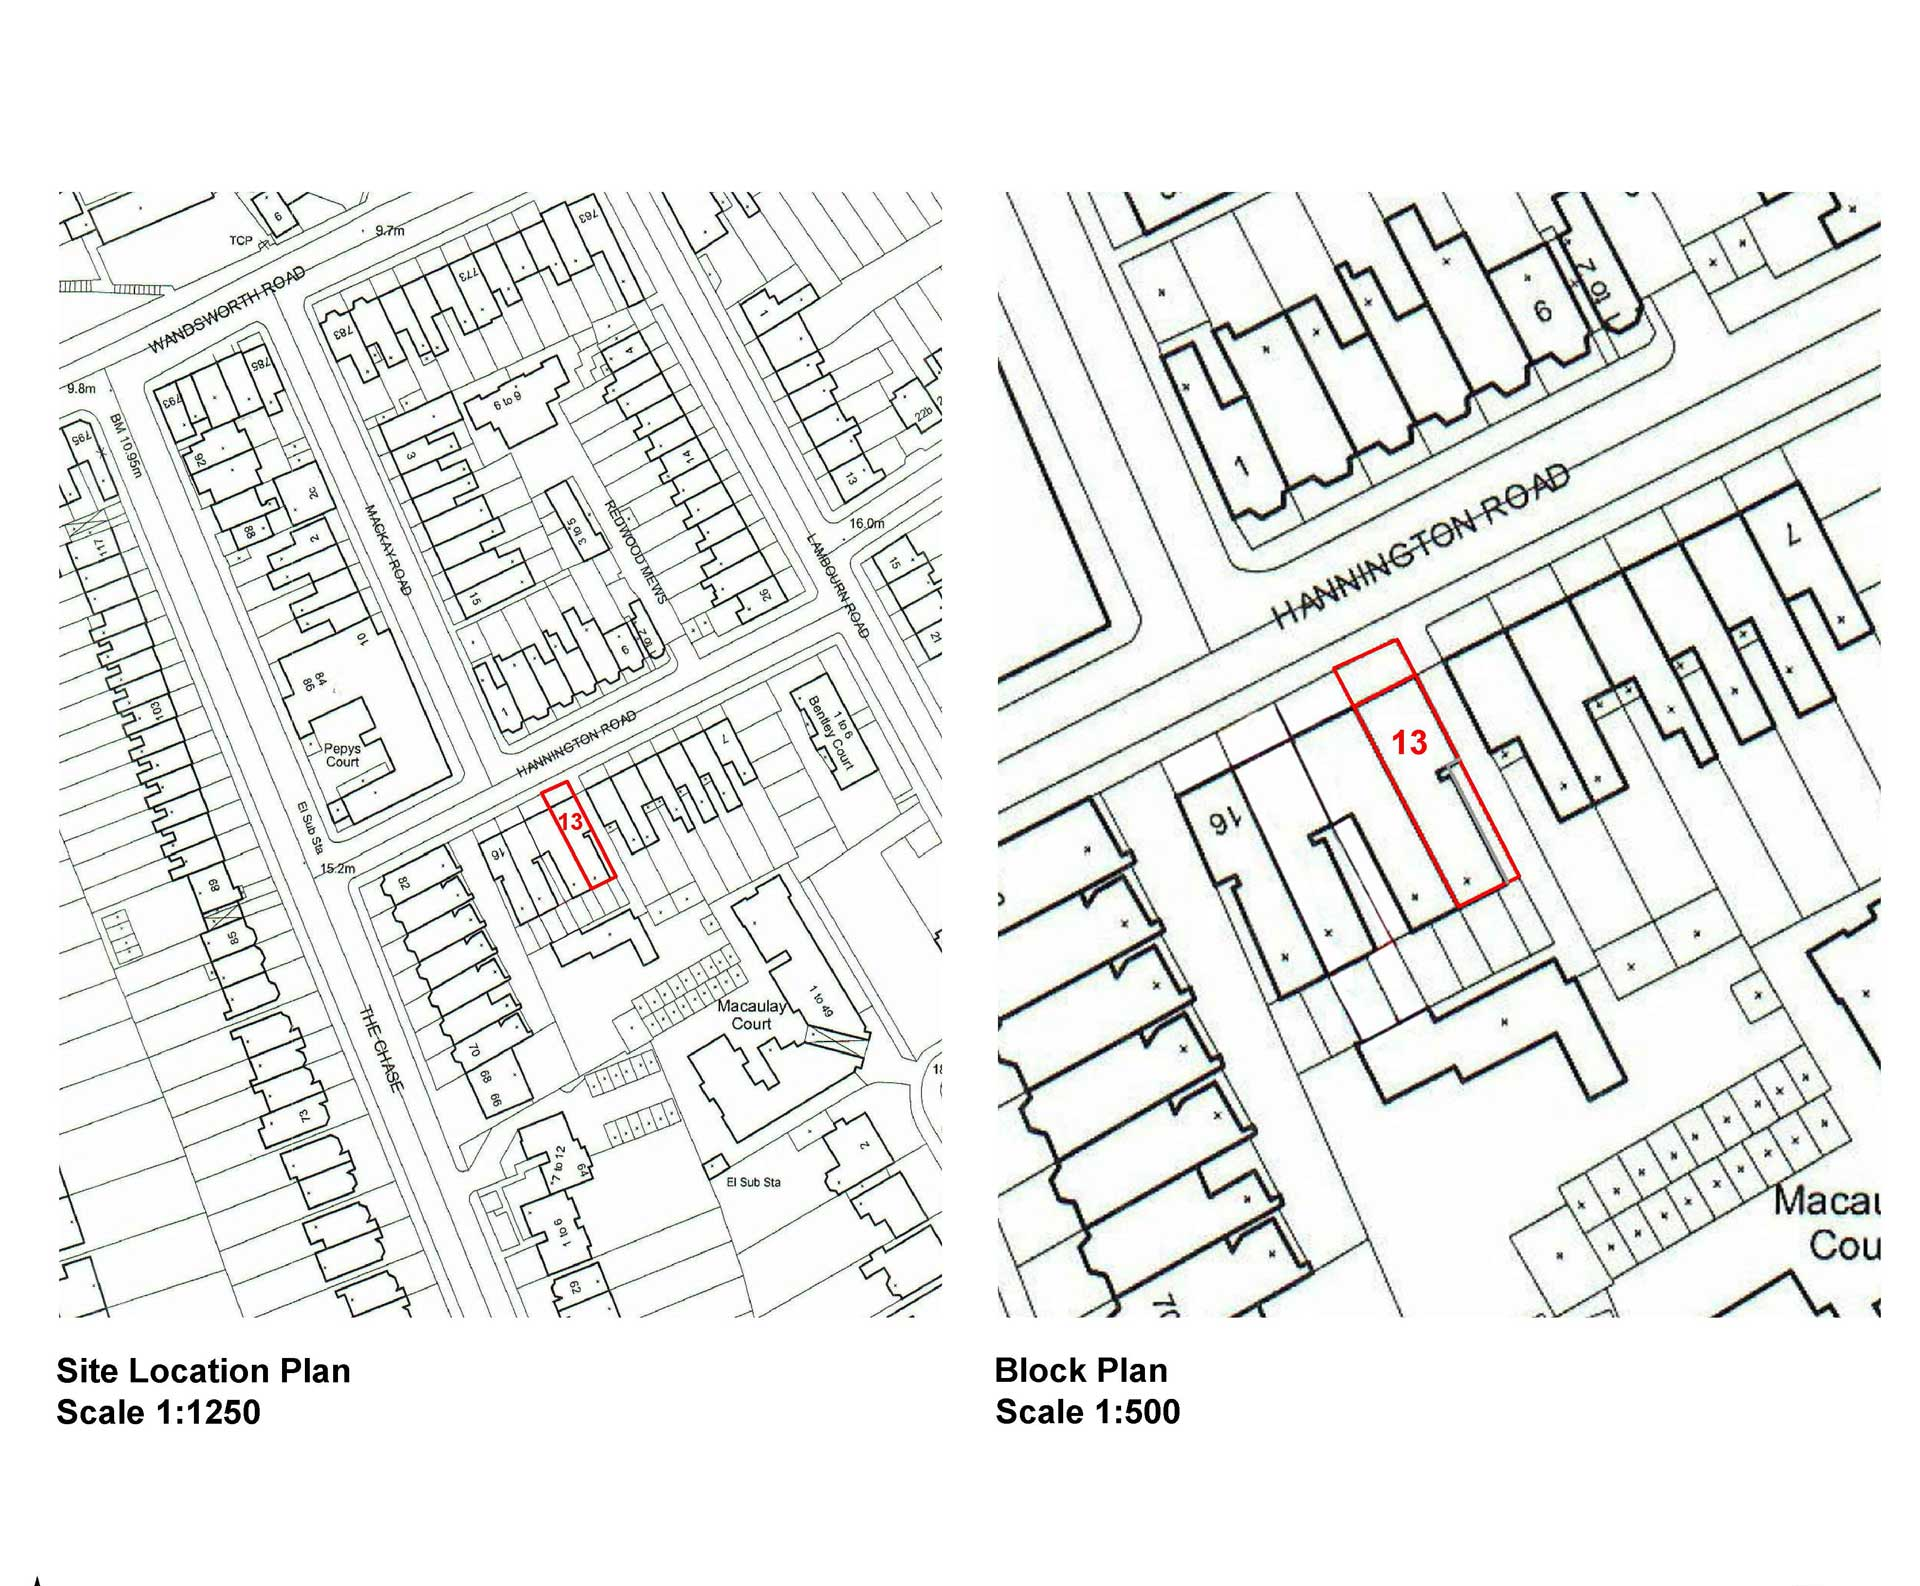 Lambeth-council-Site-Location-Plan